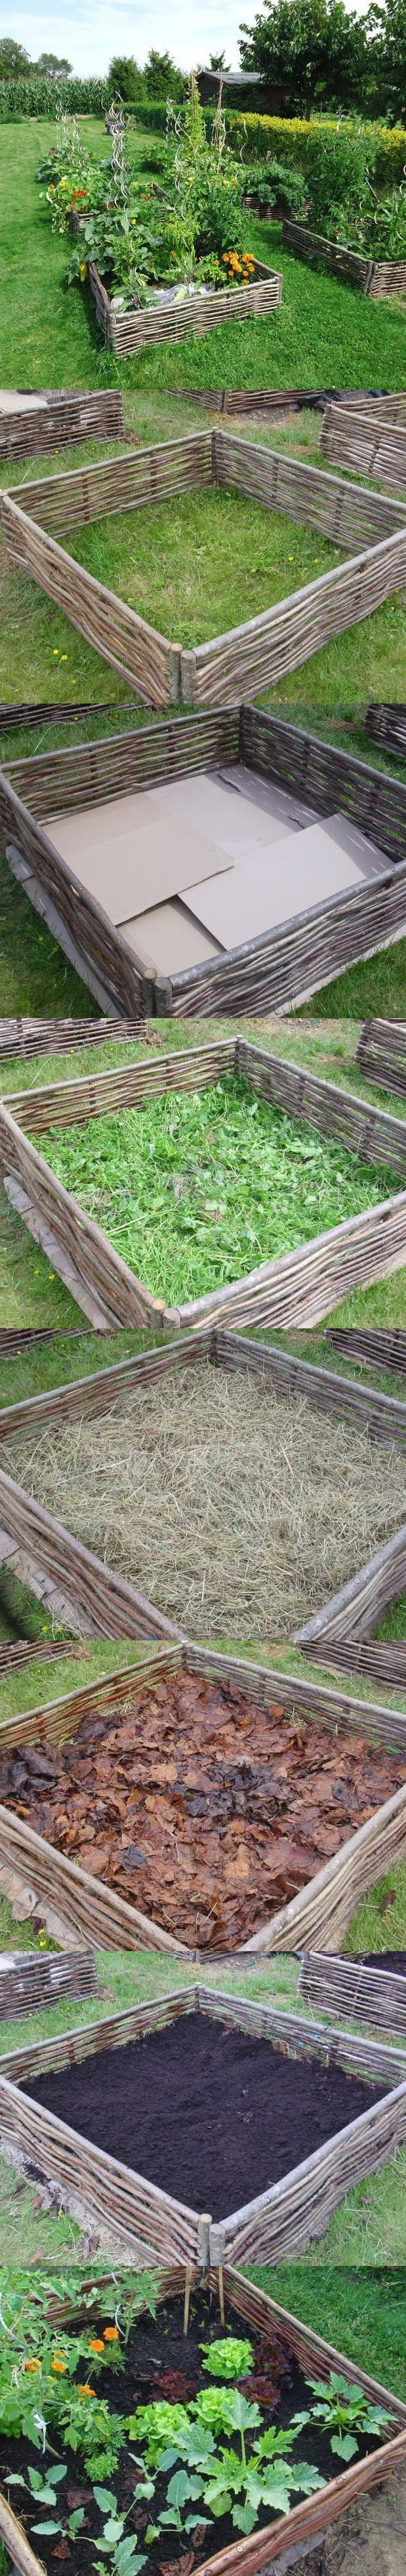 Lasagna Bed gardening - creates a great weed barrier and natural materials that will compost over time to create nutrients for the plants - love the wattle fencing.